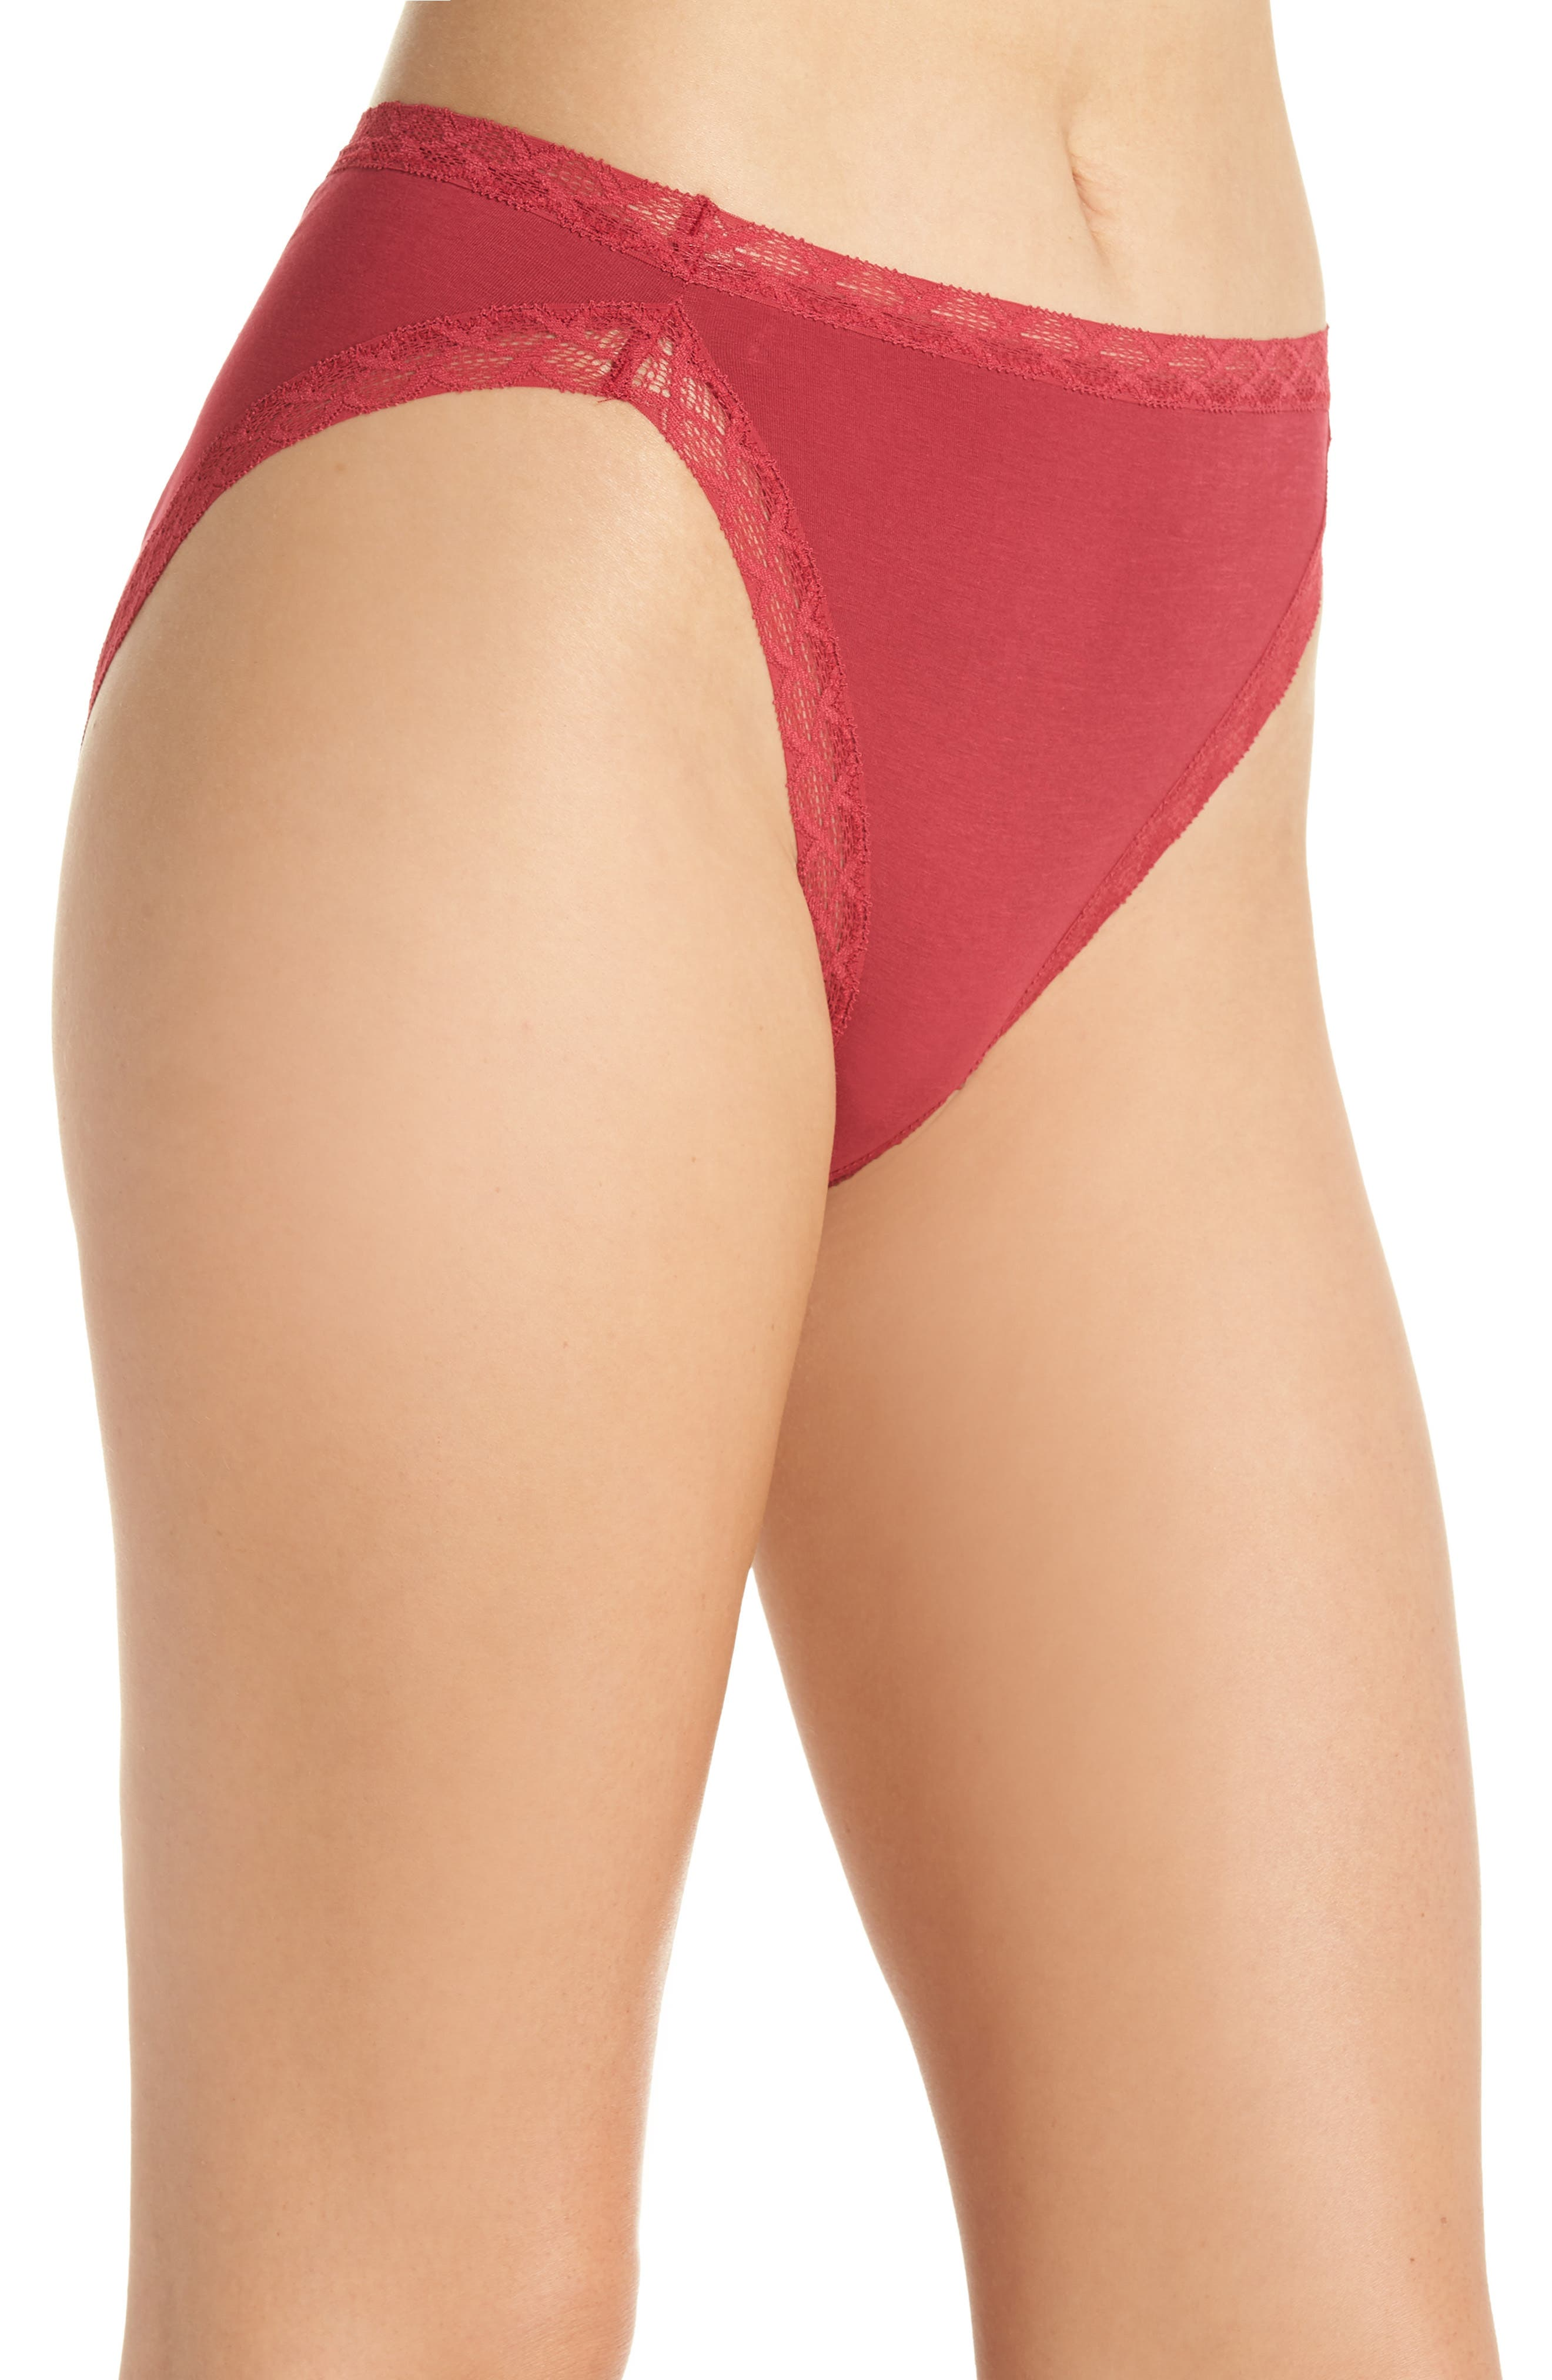 Bliss French Cut Briefs,                             Alternate thumbnail 3, color,                             625